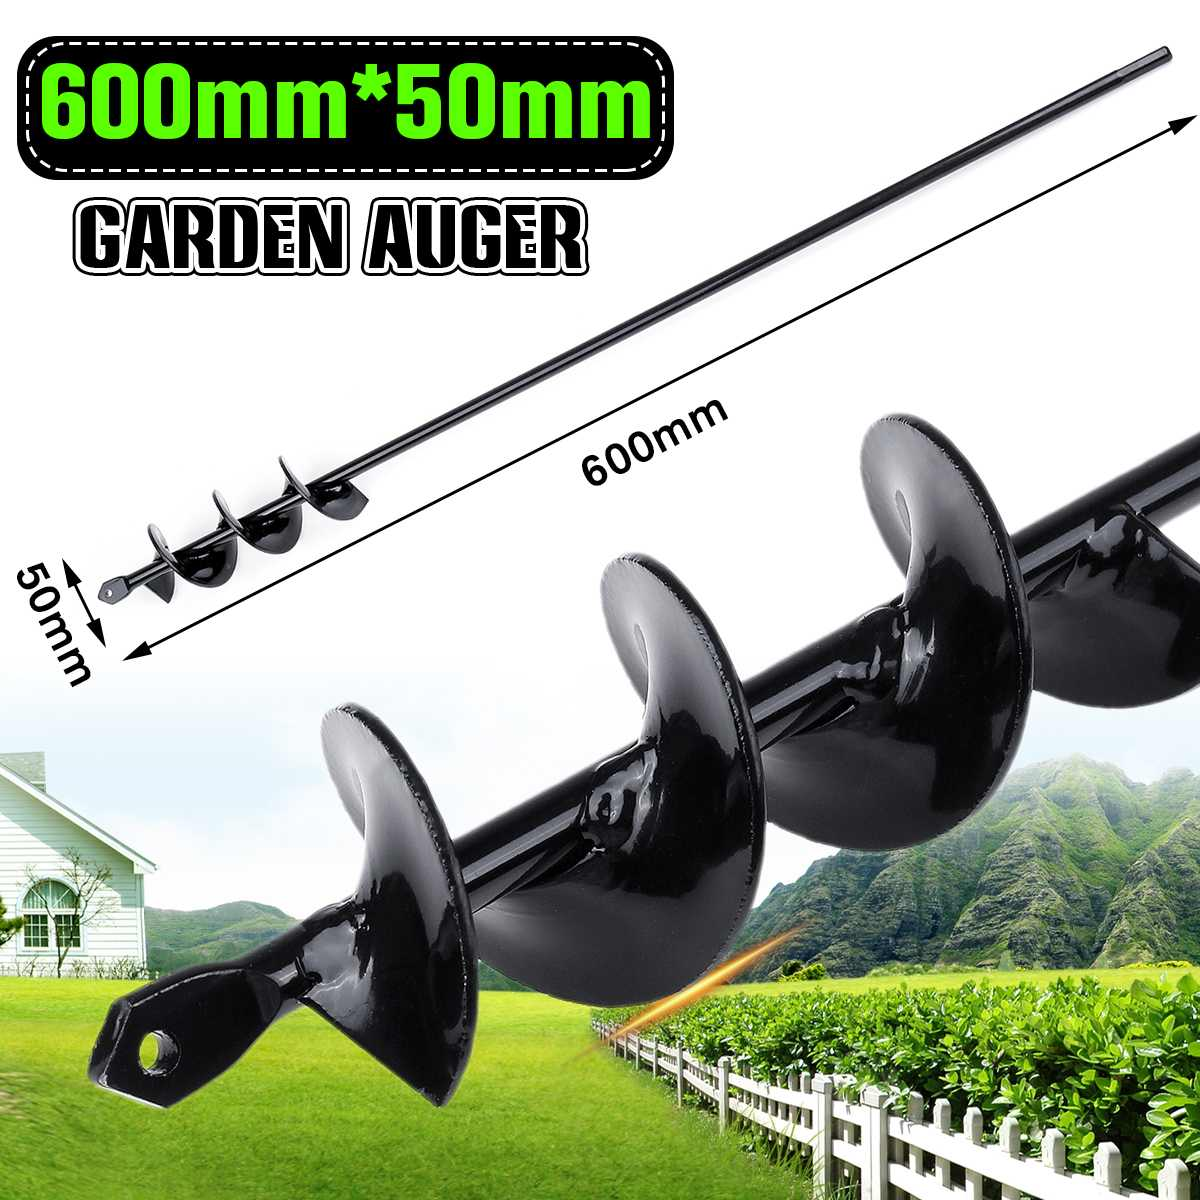 1pcs Earth Auger Hole Digger 600x50mm Tool Garden Planting Machine Drill Bit Borer Post Hole Digger Garden Auger Tool